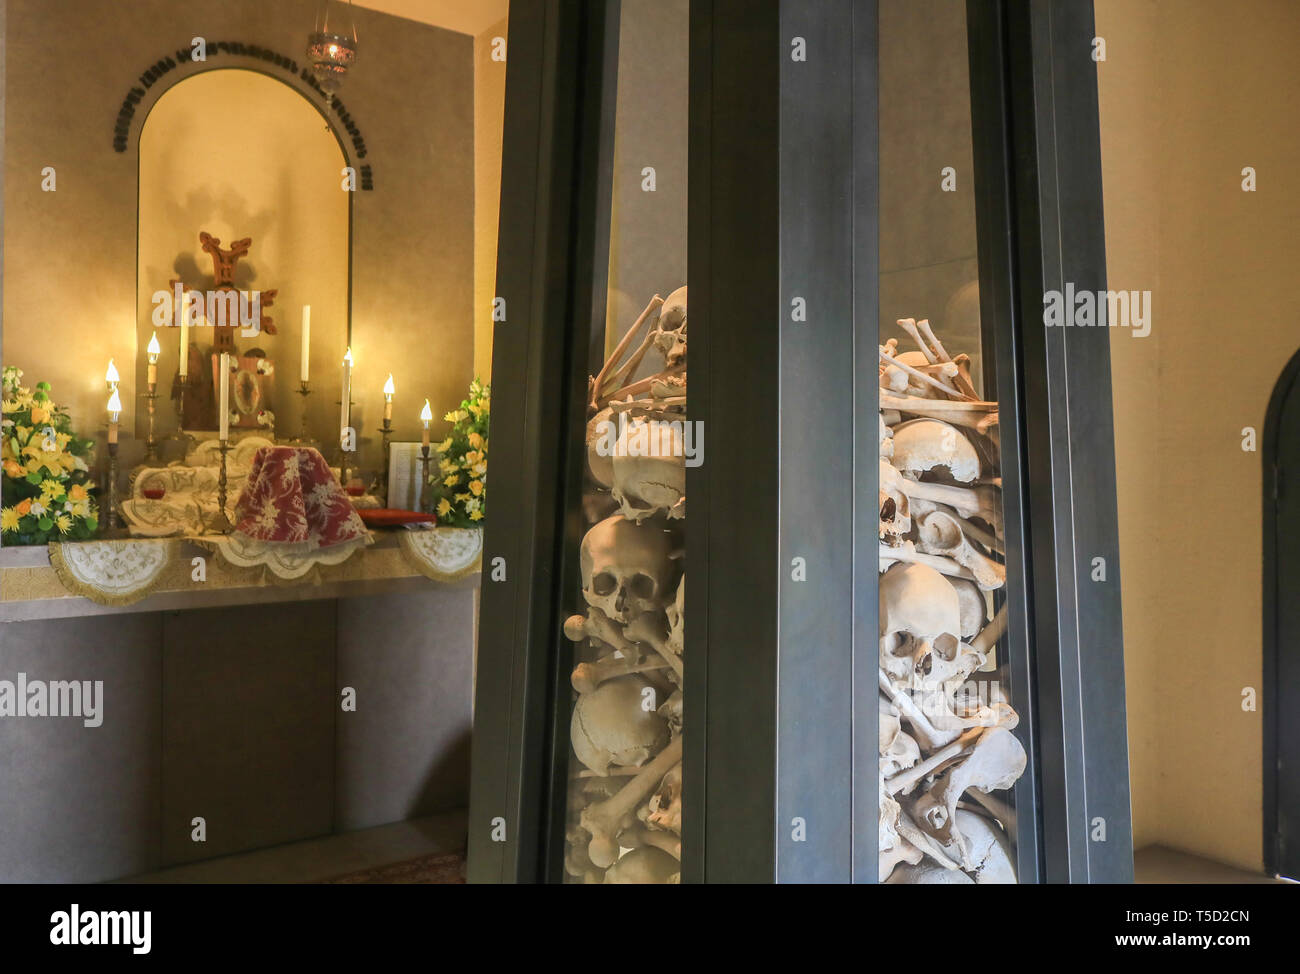 Beirut Lebanon, 24th April 2019.  The skeletal remains of Armenians killed  from persecutions by the Ottoman government in 1915 are displayed at the Saint Stephanos chapel in the Armenian Orthodox Archdiocese in Antelias, north of the Lebanese capital, Beirut as Armenians worldwide commemorate the  1.5 million Armenians in 1915 who were systematically killed by the  Ottoman Turkish Government. Turkey has fiercely rejected the term 'Genocide' and refuses to recognise the claims of the Armenian people Credit: amer ghazzal/Alamy Live News - Stock Image